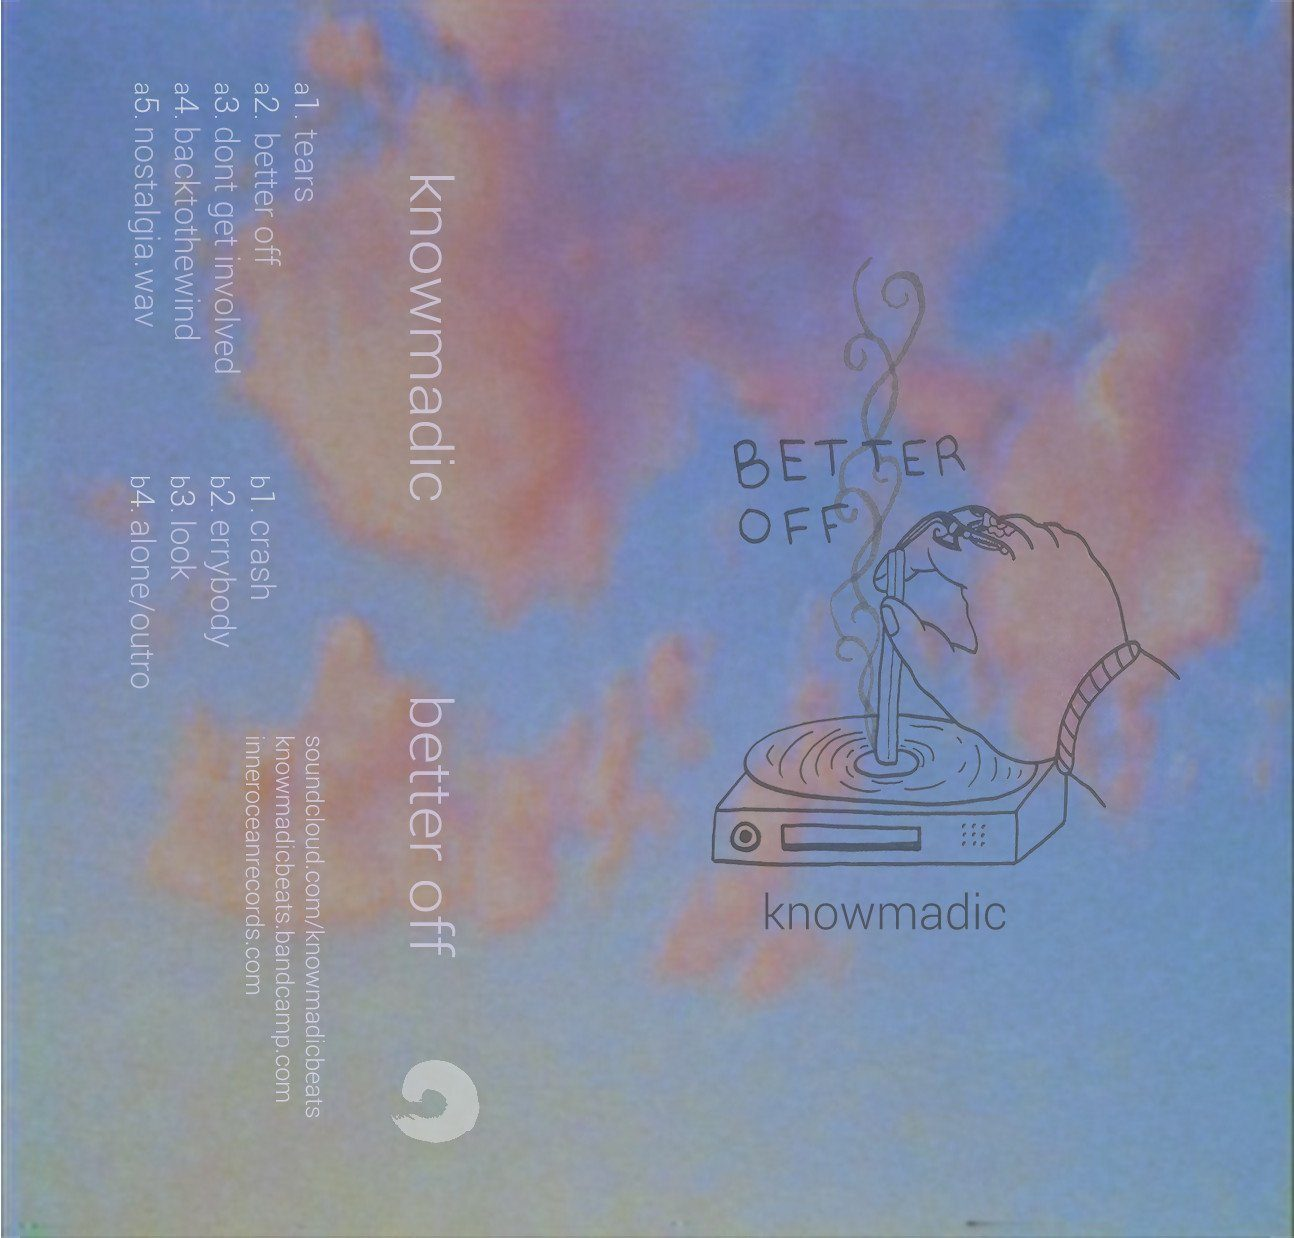 Knowmadic - Better Off - Inner Ocean Records